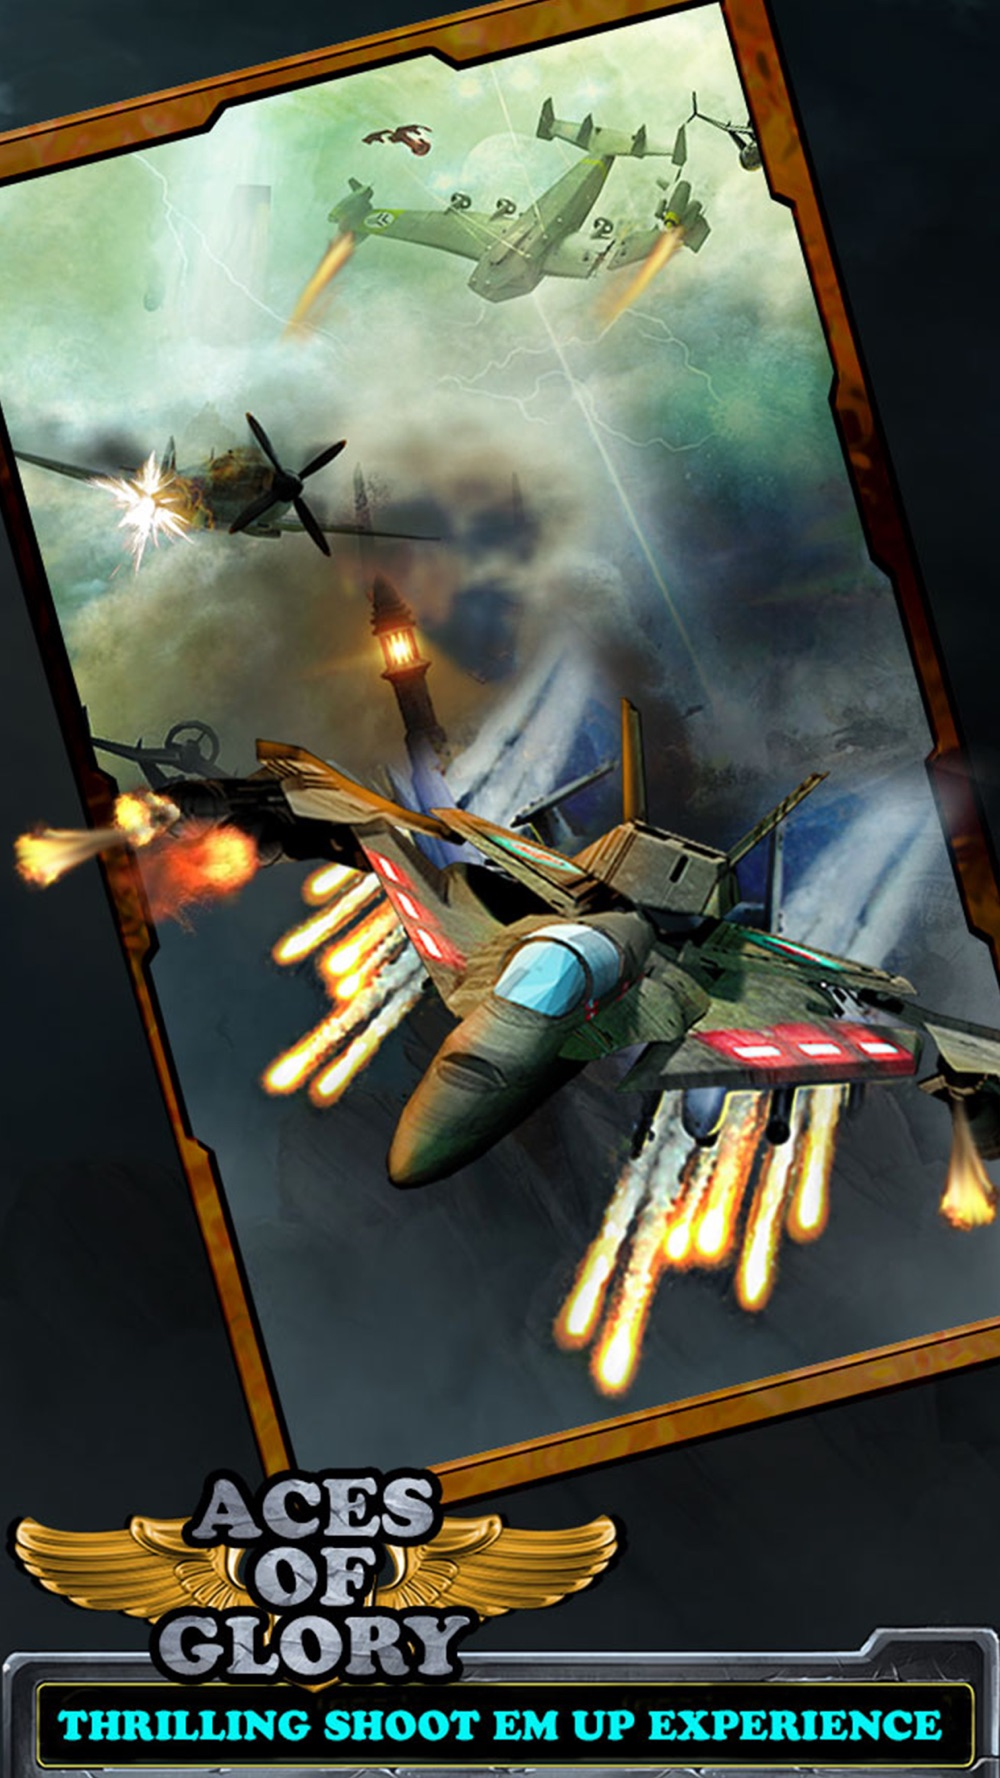 Aces of Glory Cheat Codes